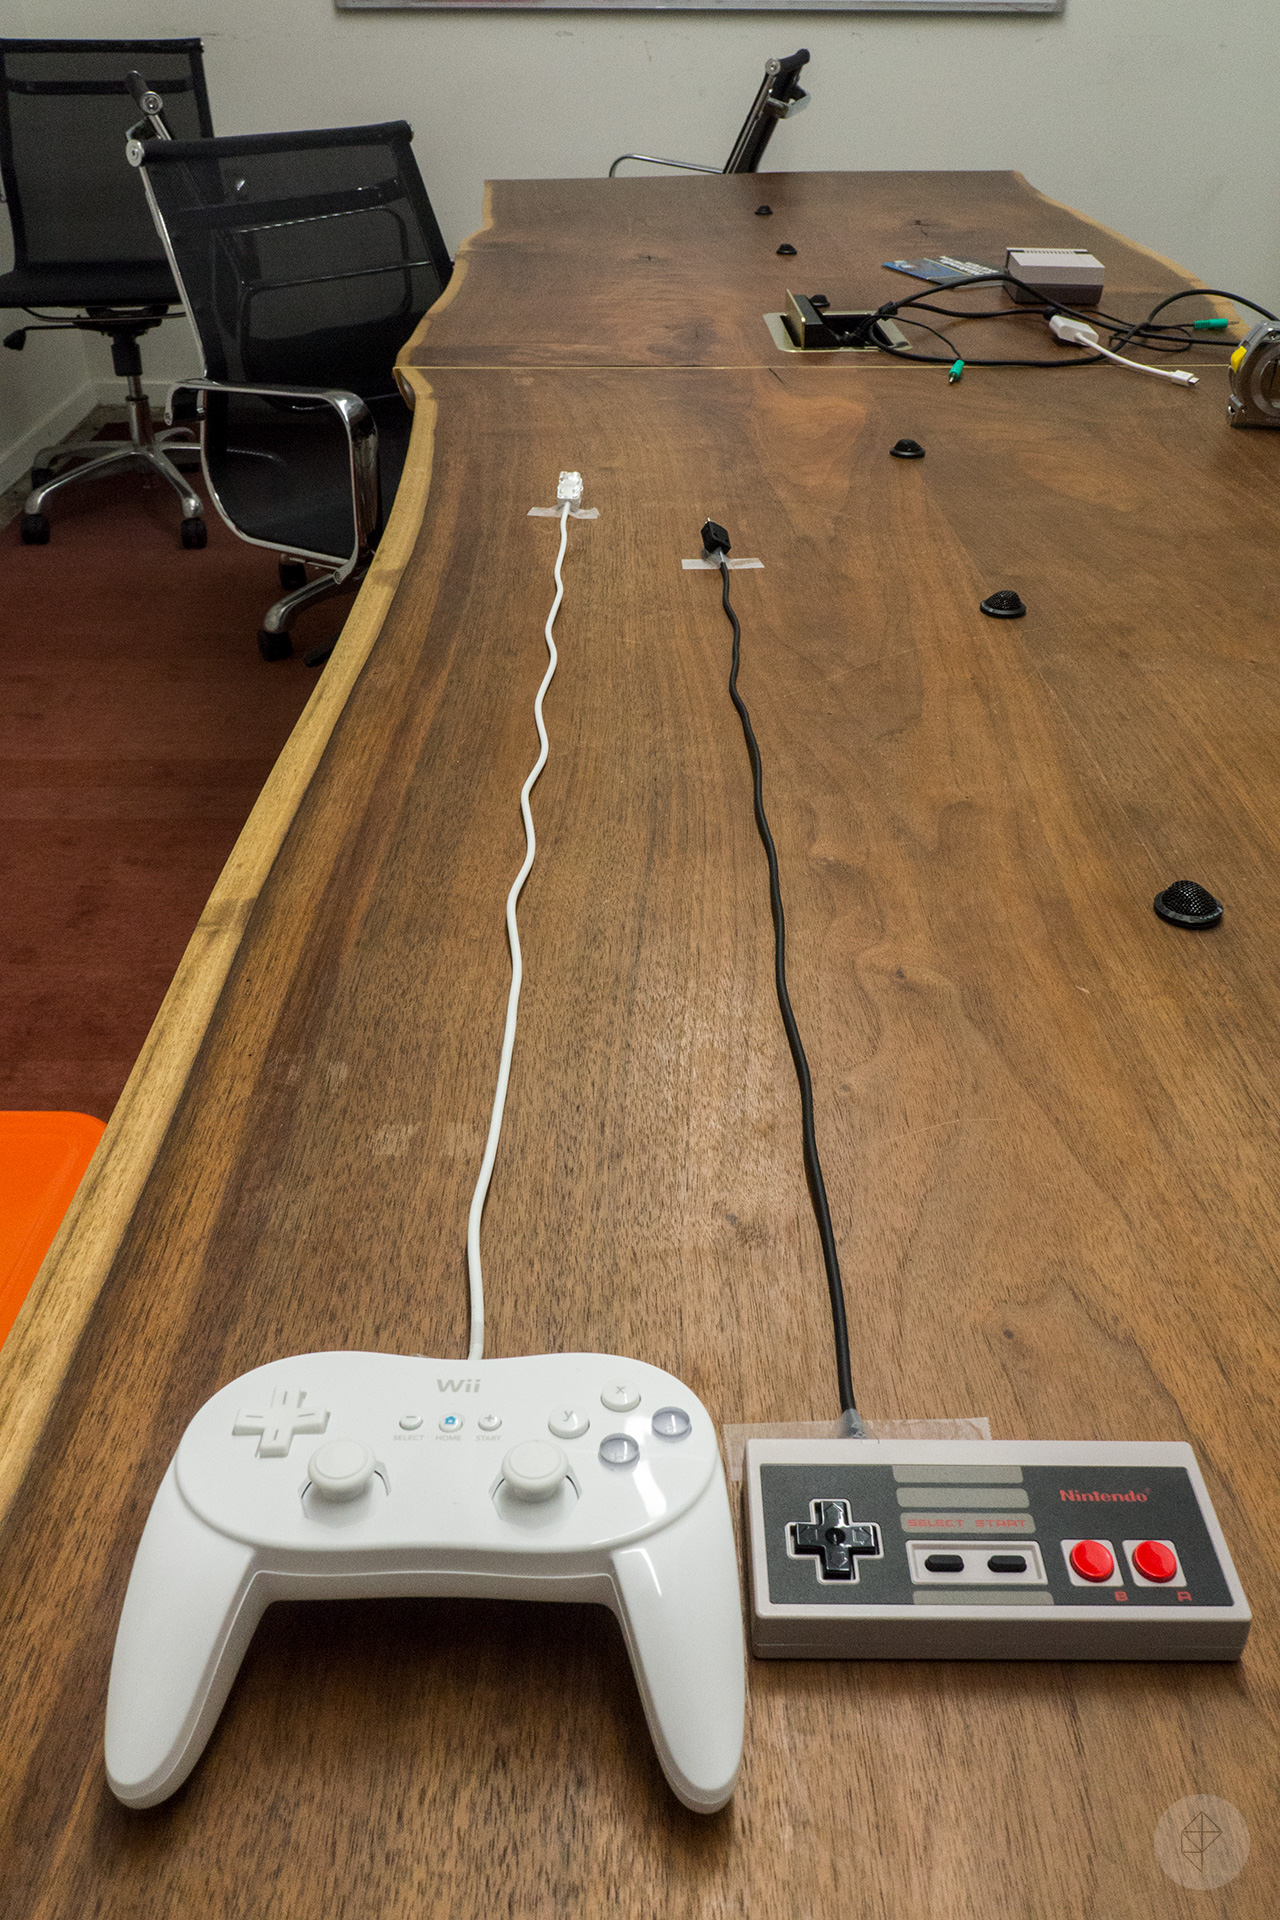 The Mini Nes Classic Edition Controllers Cable Is Much Wii Component Schematic Length Of More Similar Here